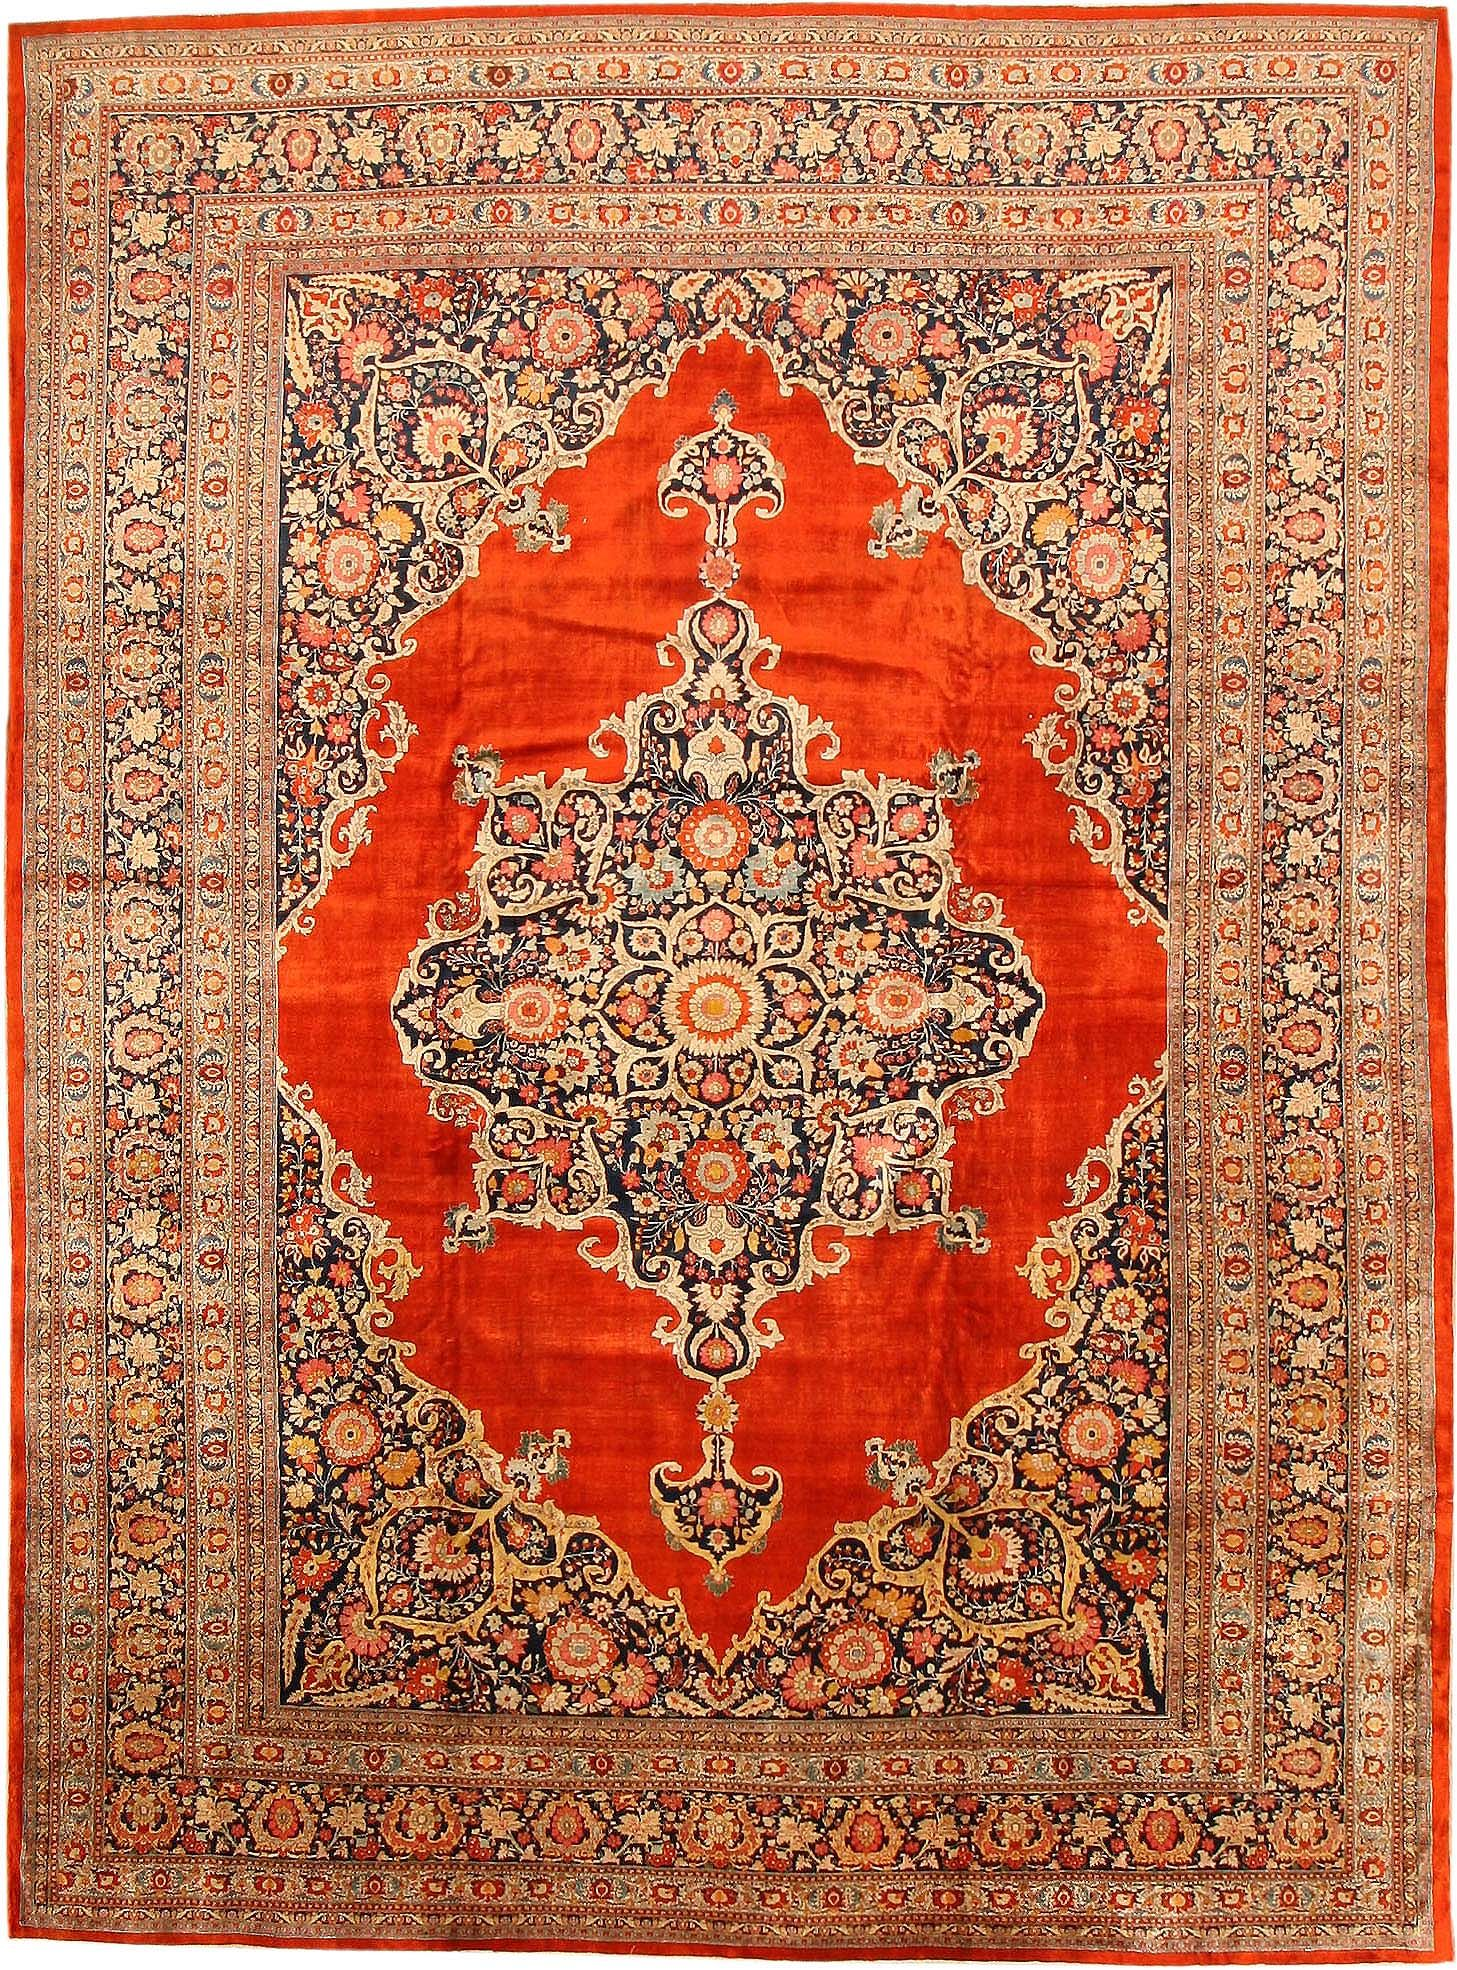 View This Beautiful Antique Persian Silk Tabriz Rug From Nazmiyal S Fine Rugs And Decorative Carpet Collection In Nyc